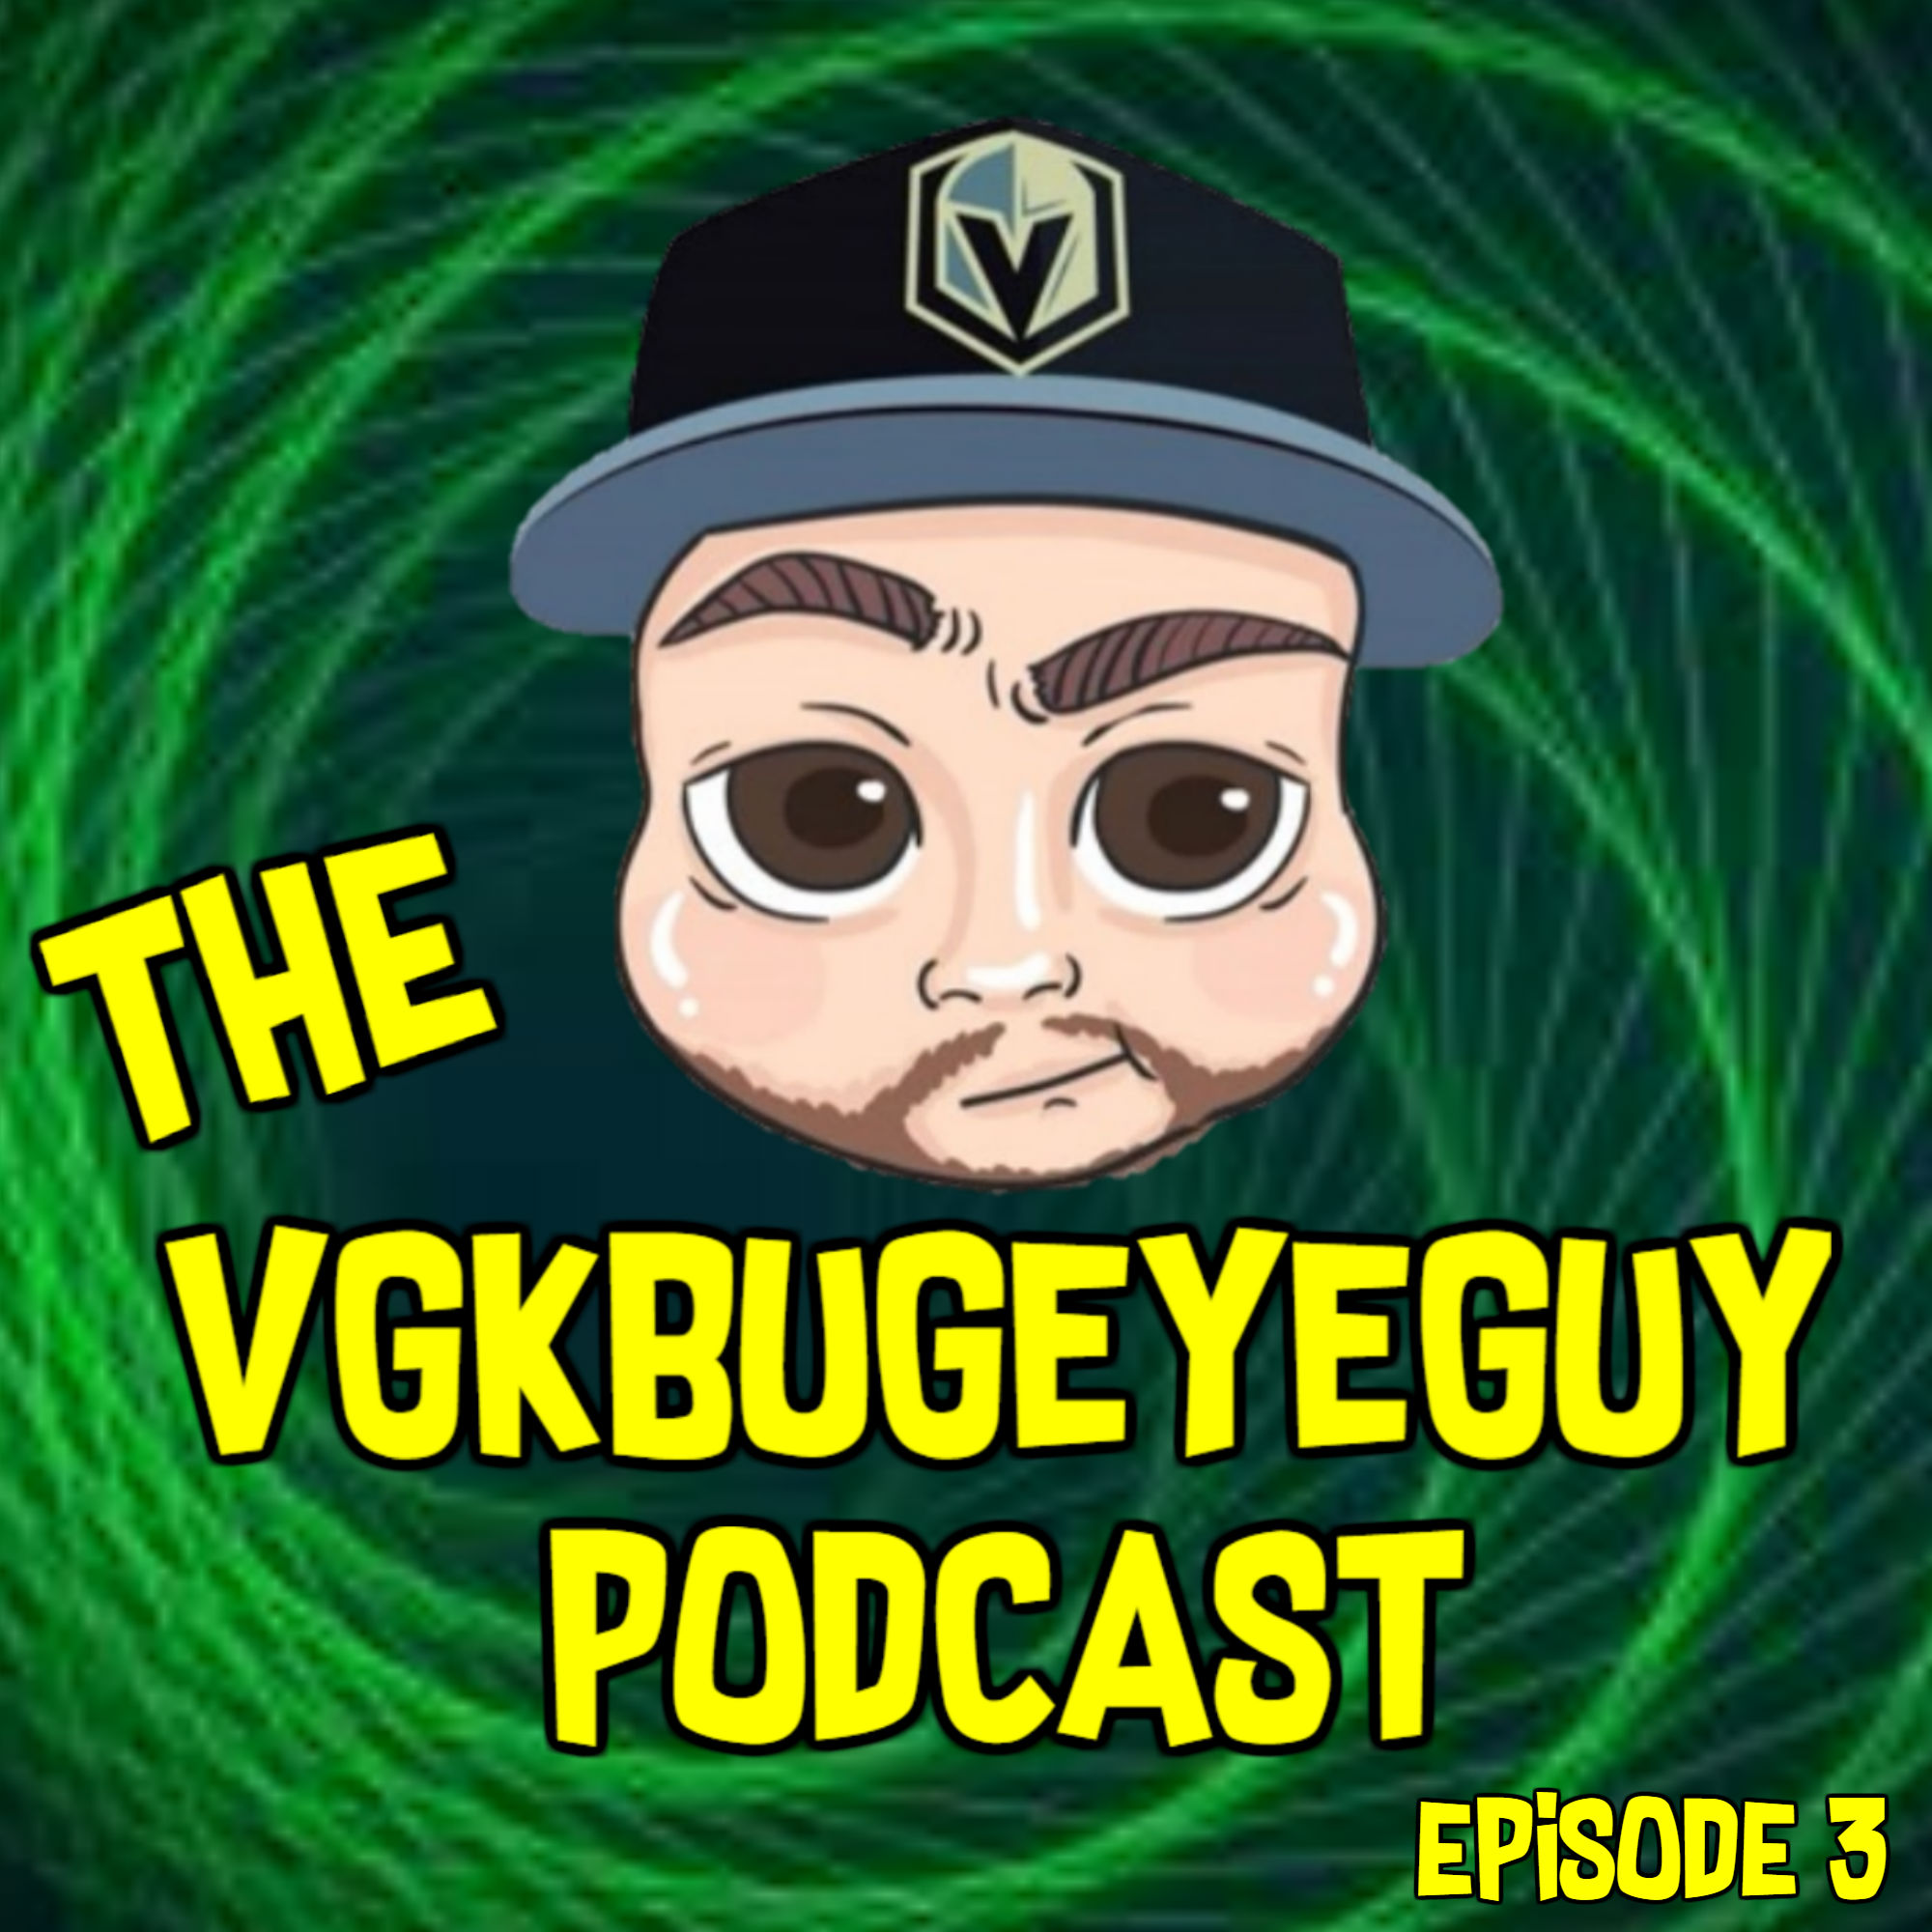 The VGKbugeyeGuy Podcast Episode 3